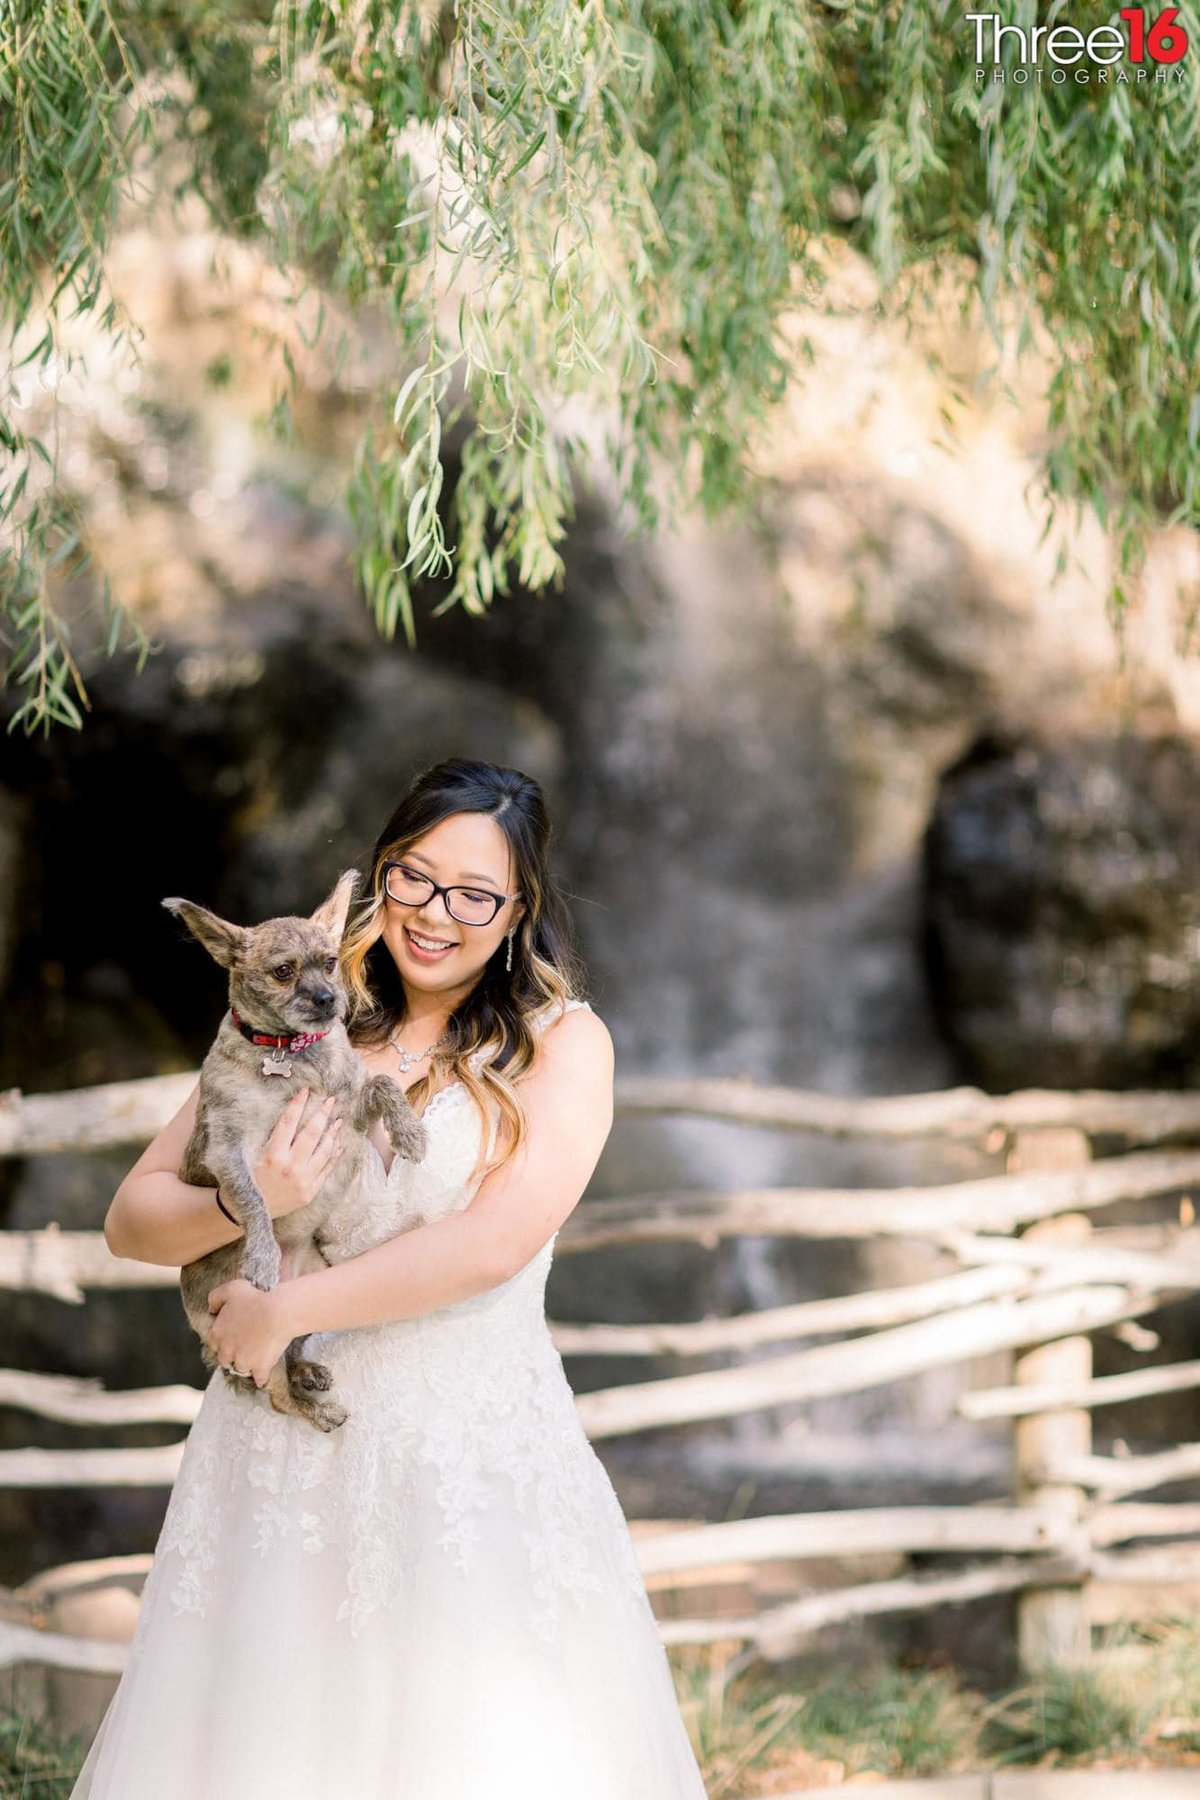 Bride poses in her wedding dress with her dog